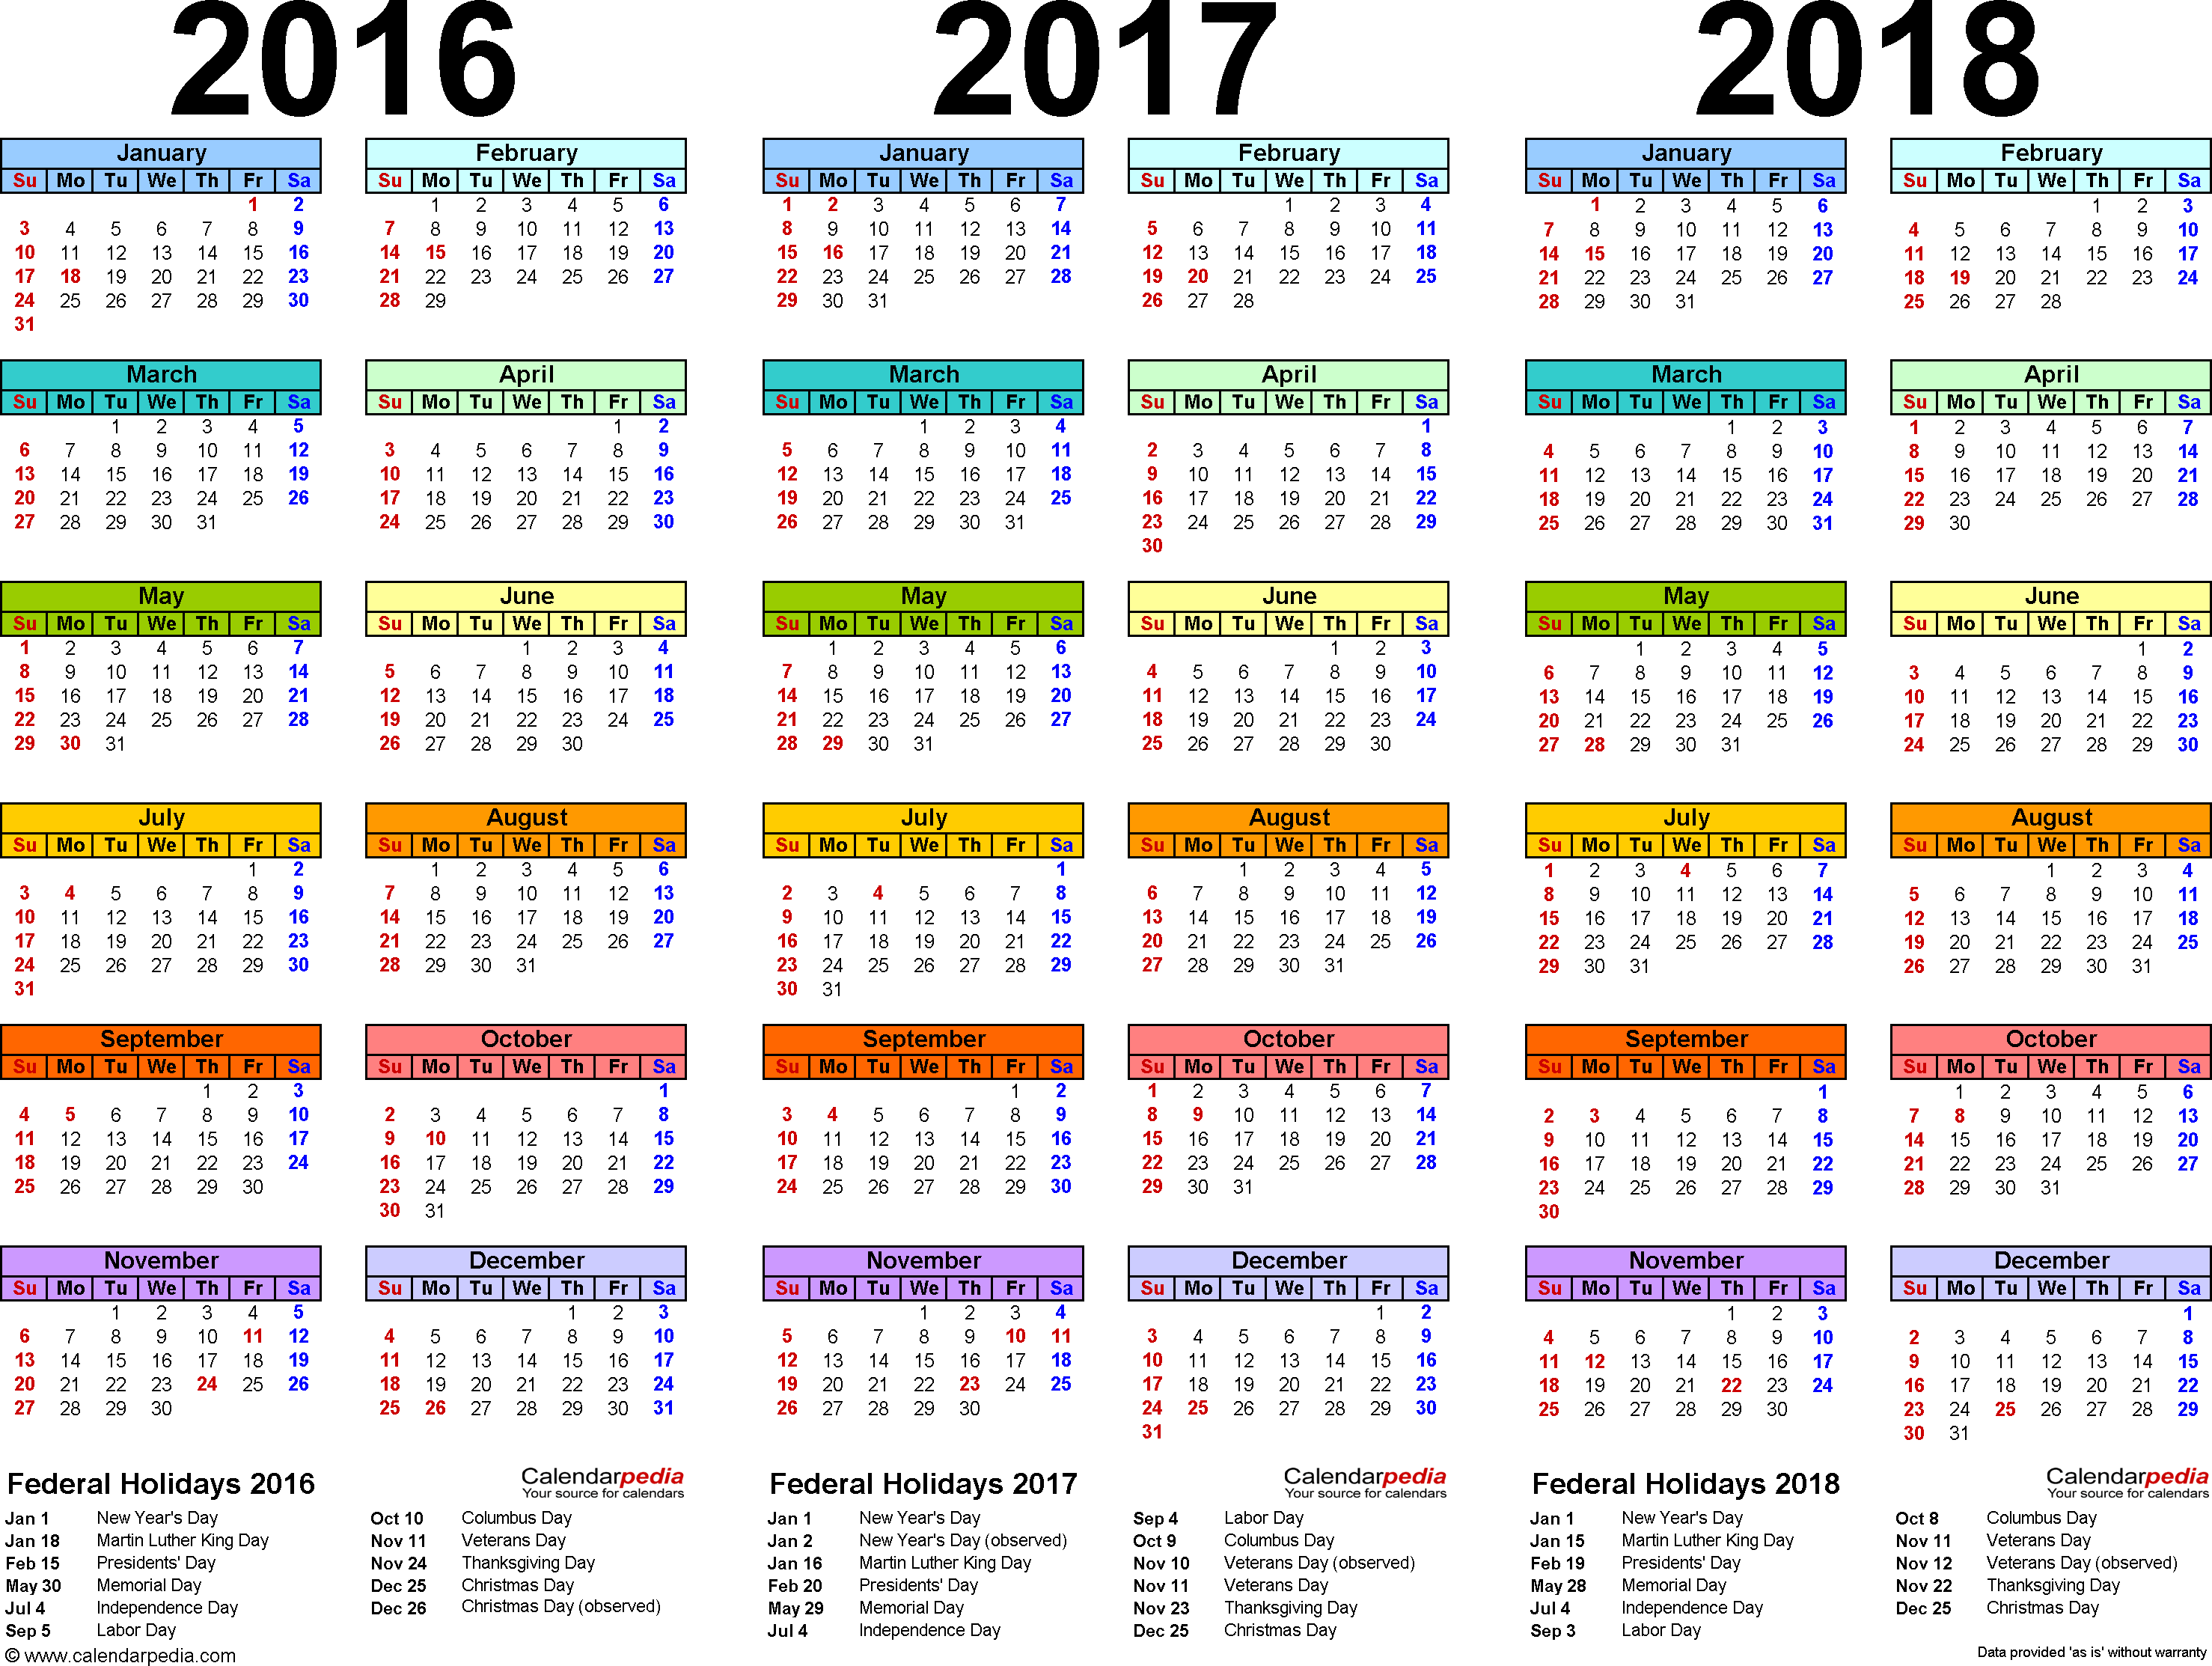 Template 1: PDF template for three year calendar 2016/2017/2018